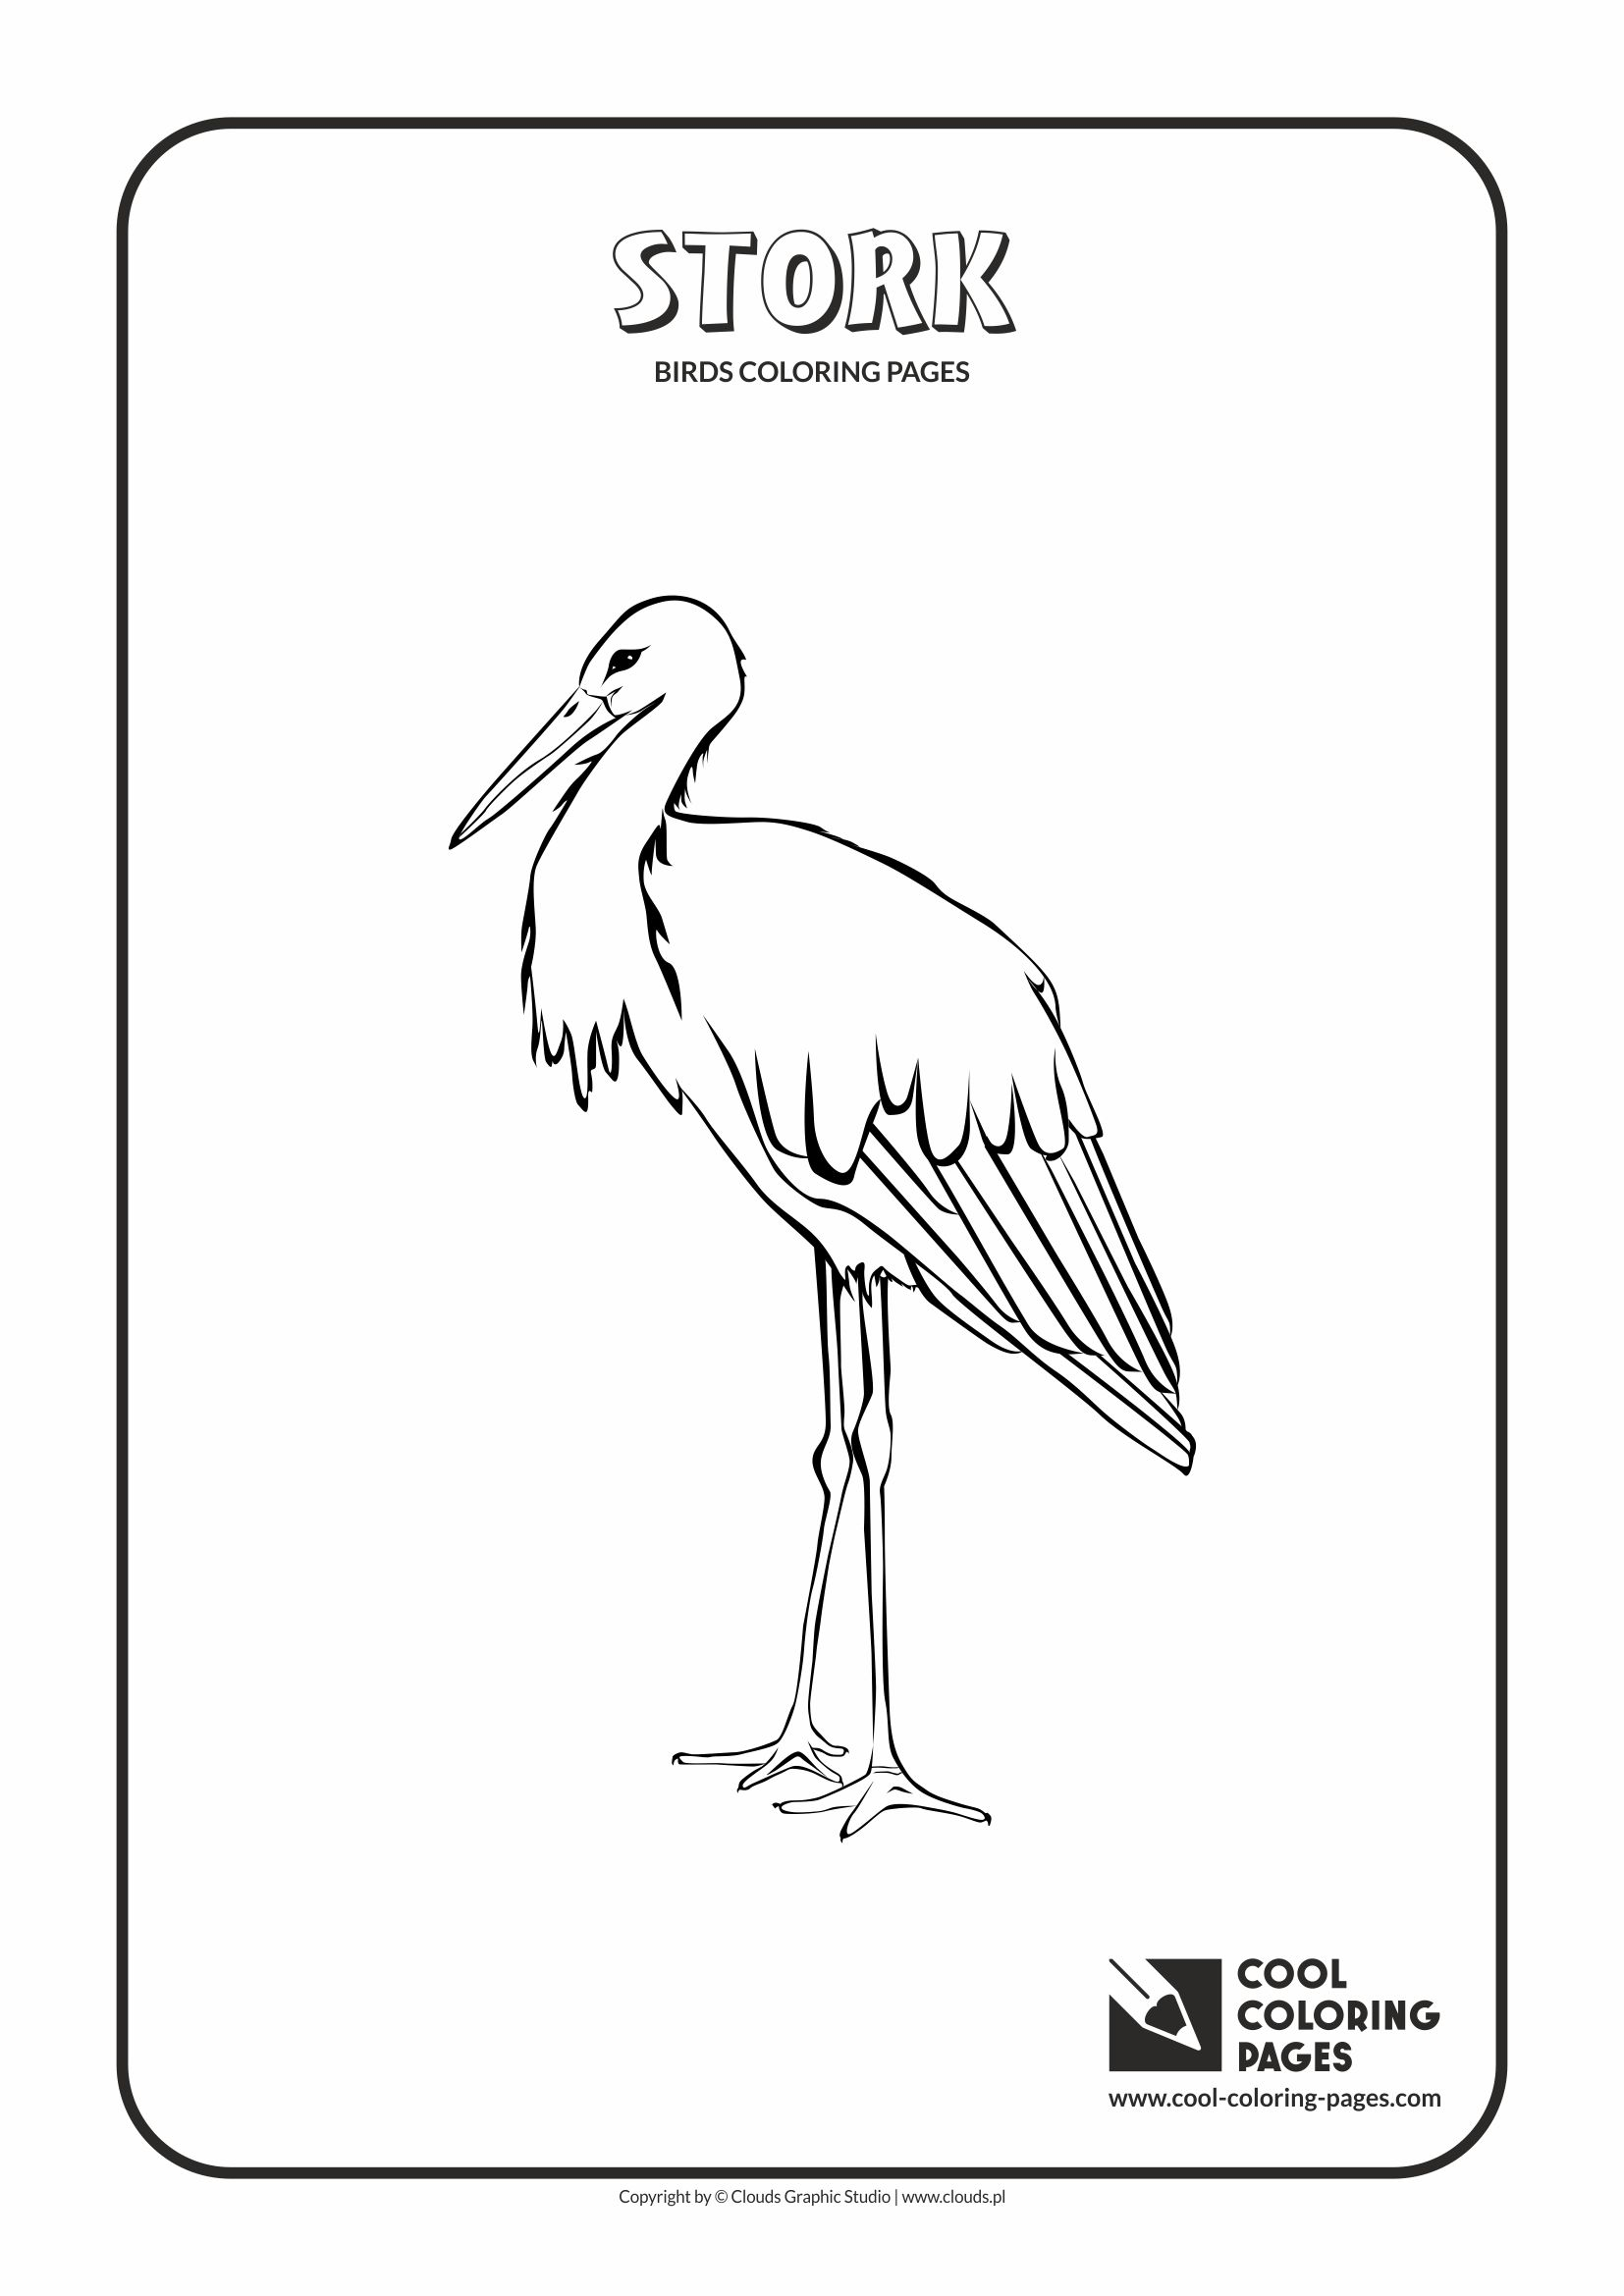 Cool Coloring Pages - Animals / Stork / Coloring page with stork